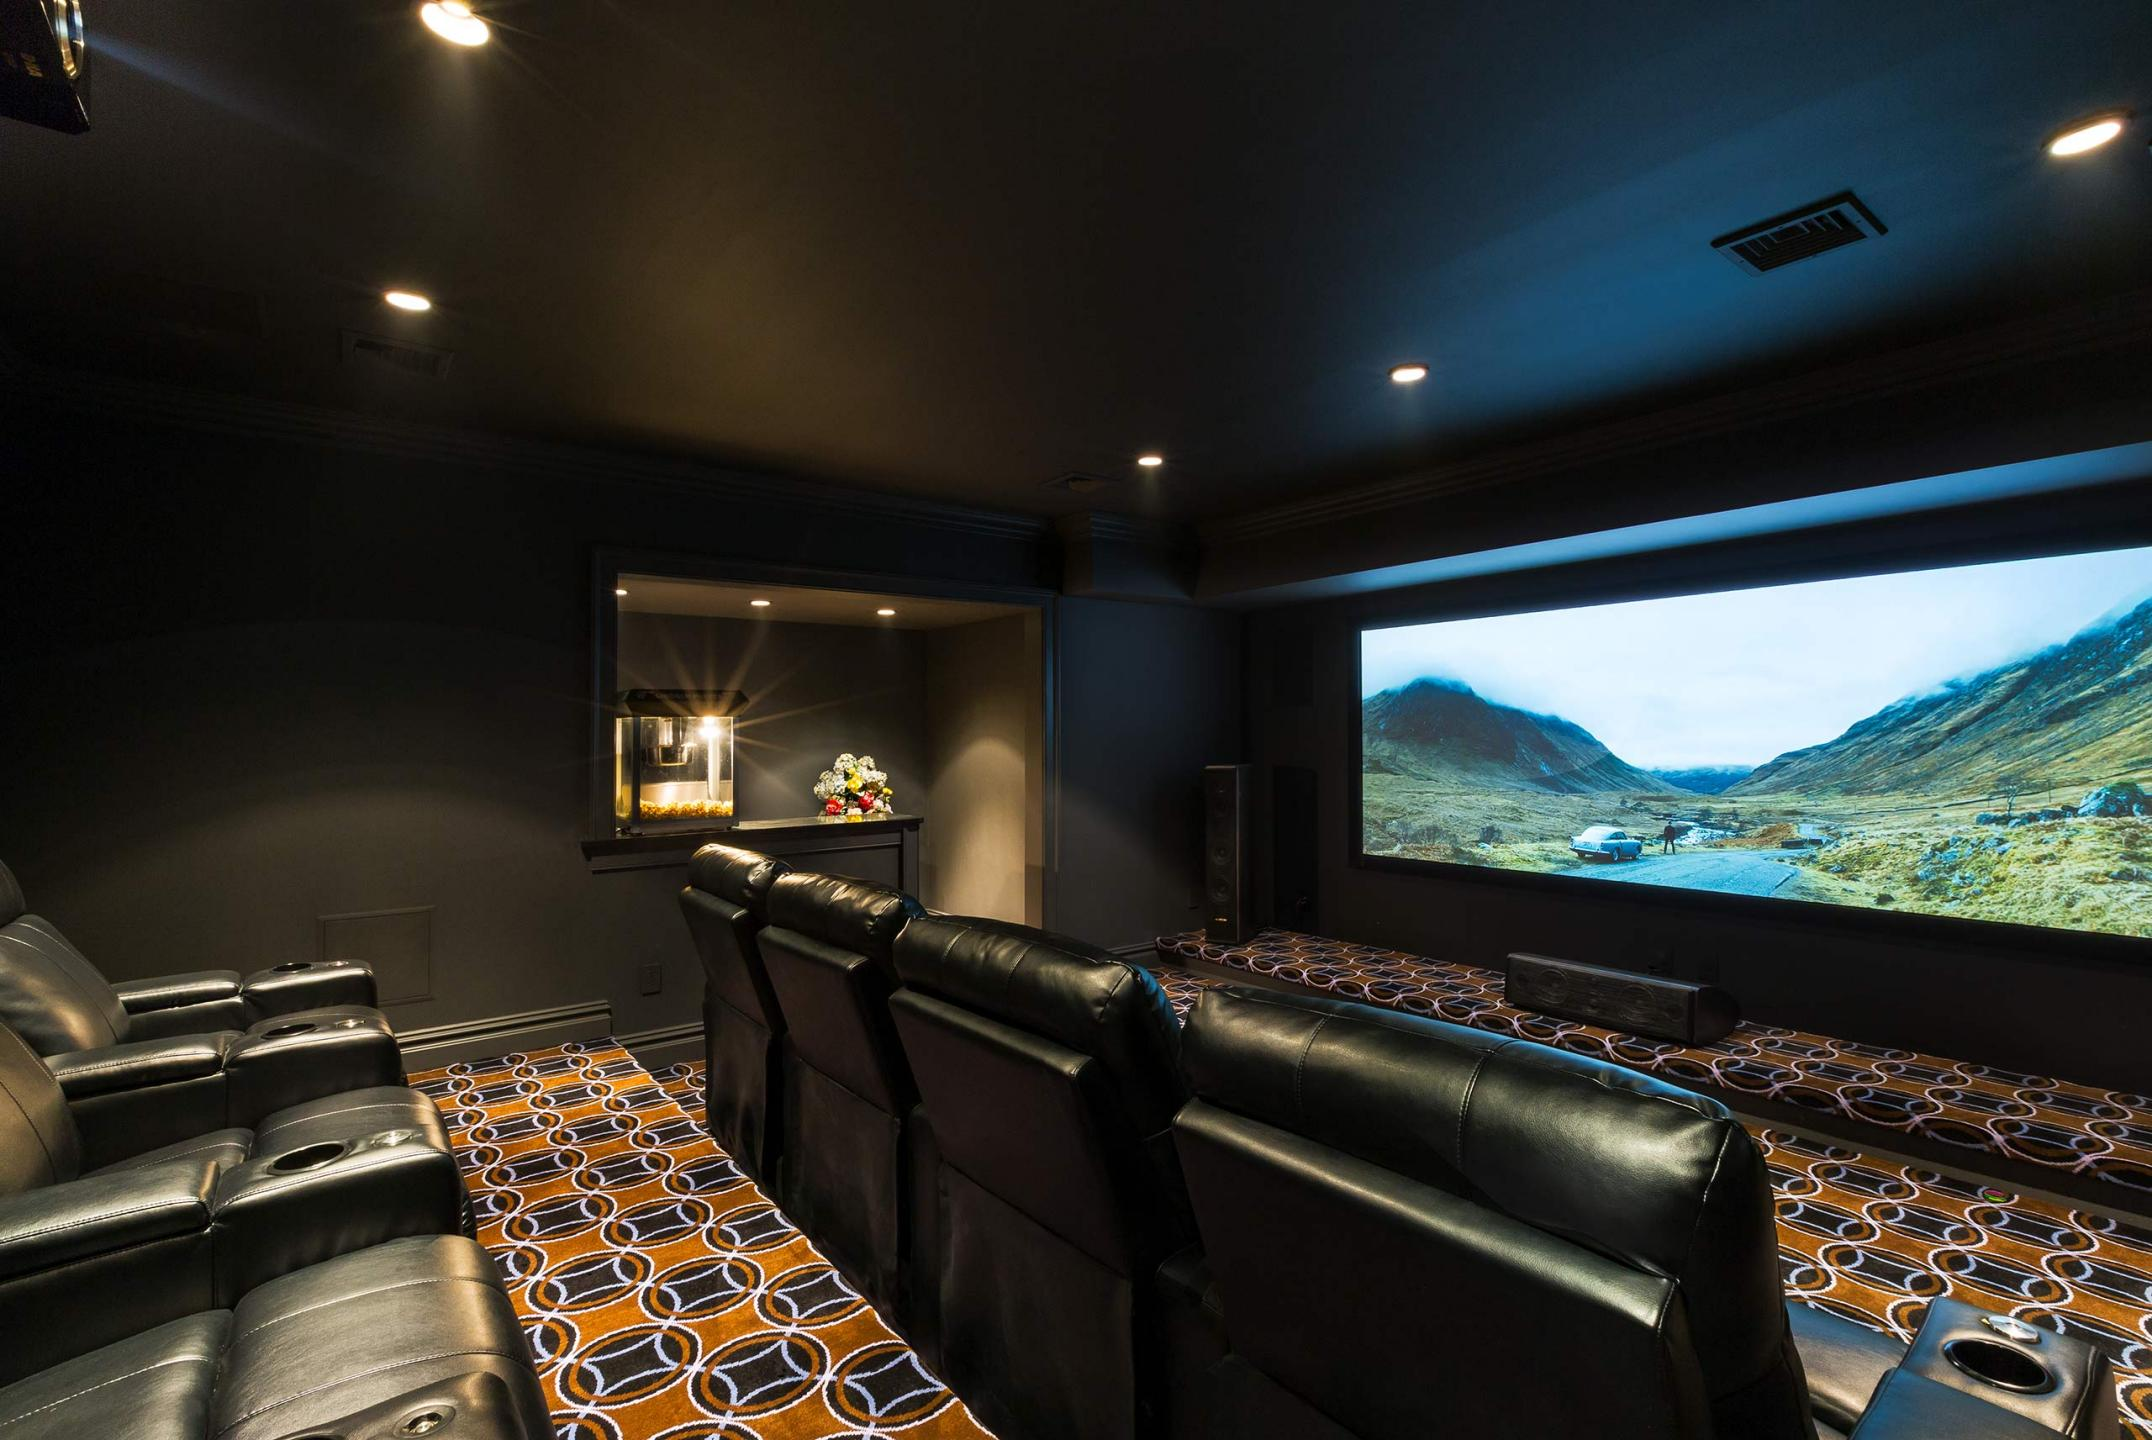 KAIDEN TECHNOLOGIES - Home Entertainment Systems - large scale home theater. : Miscellanous Projects : New York NY Architectural Photographer | Interior and Exterior